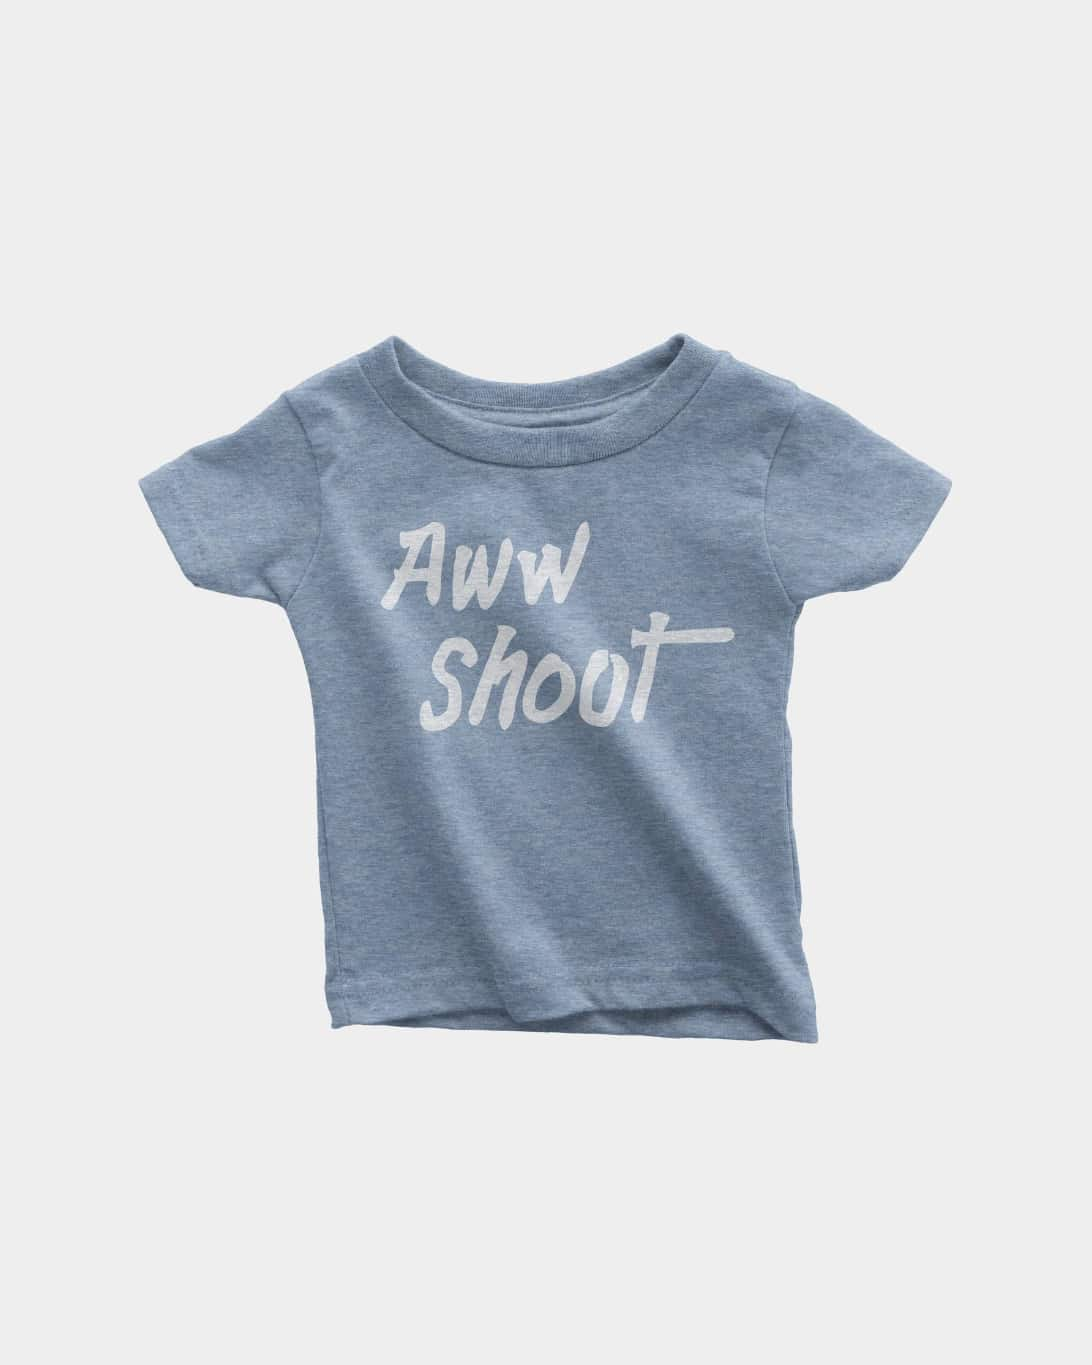 Aww Shoot Kids Tee